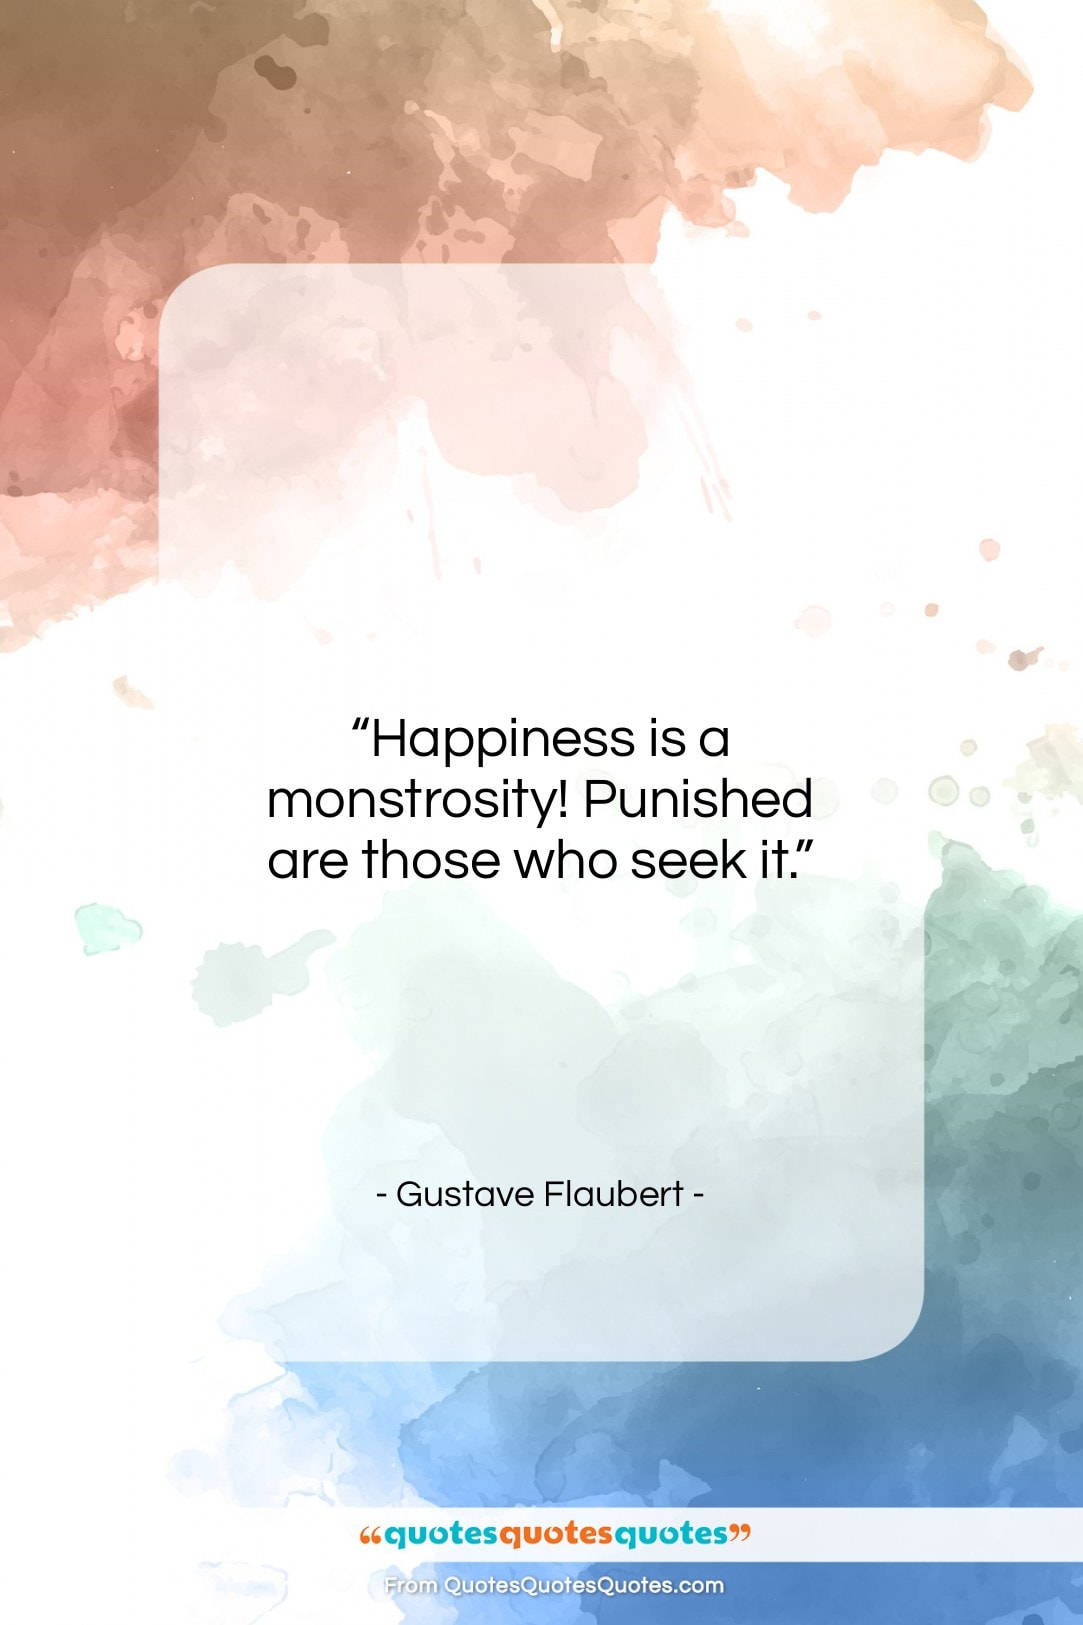 """Gustave Flaubert quote: """"Happiness is a monstrosity! Punished are those…""""- at QuotesQuotesQuotes.com"""